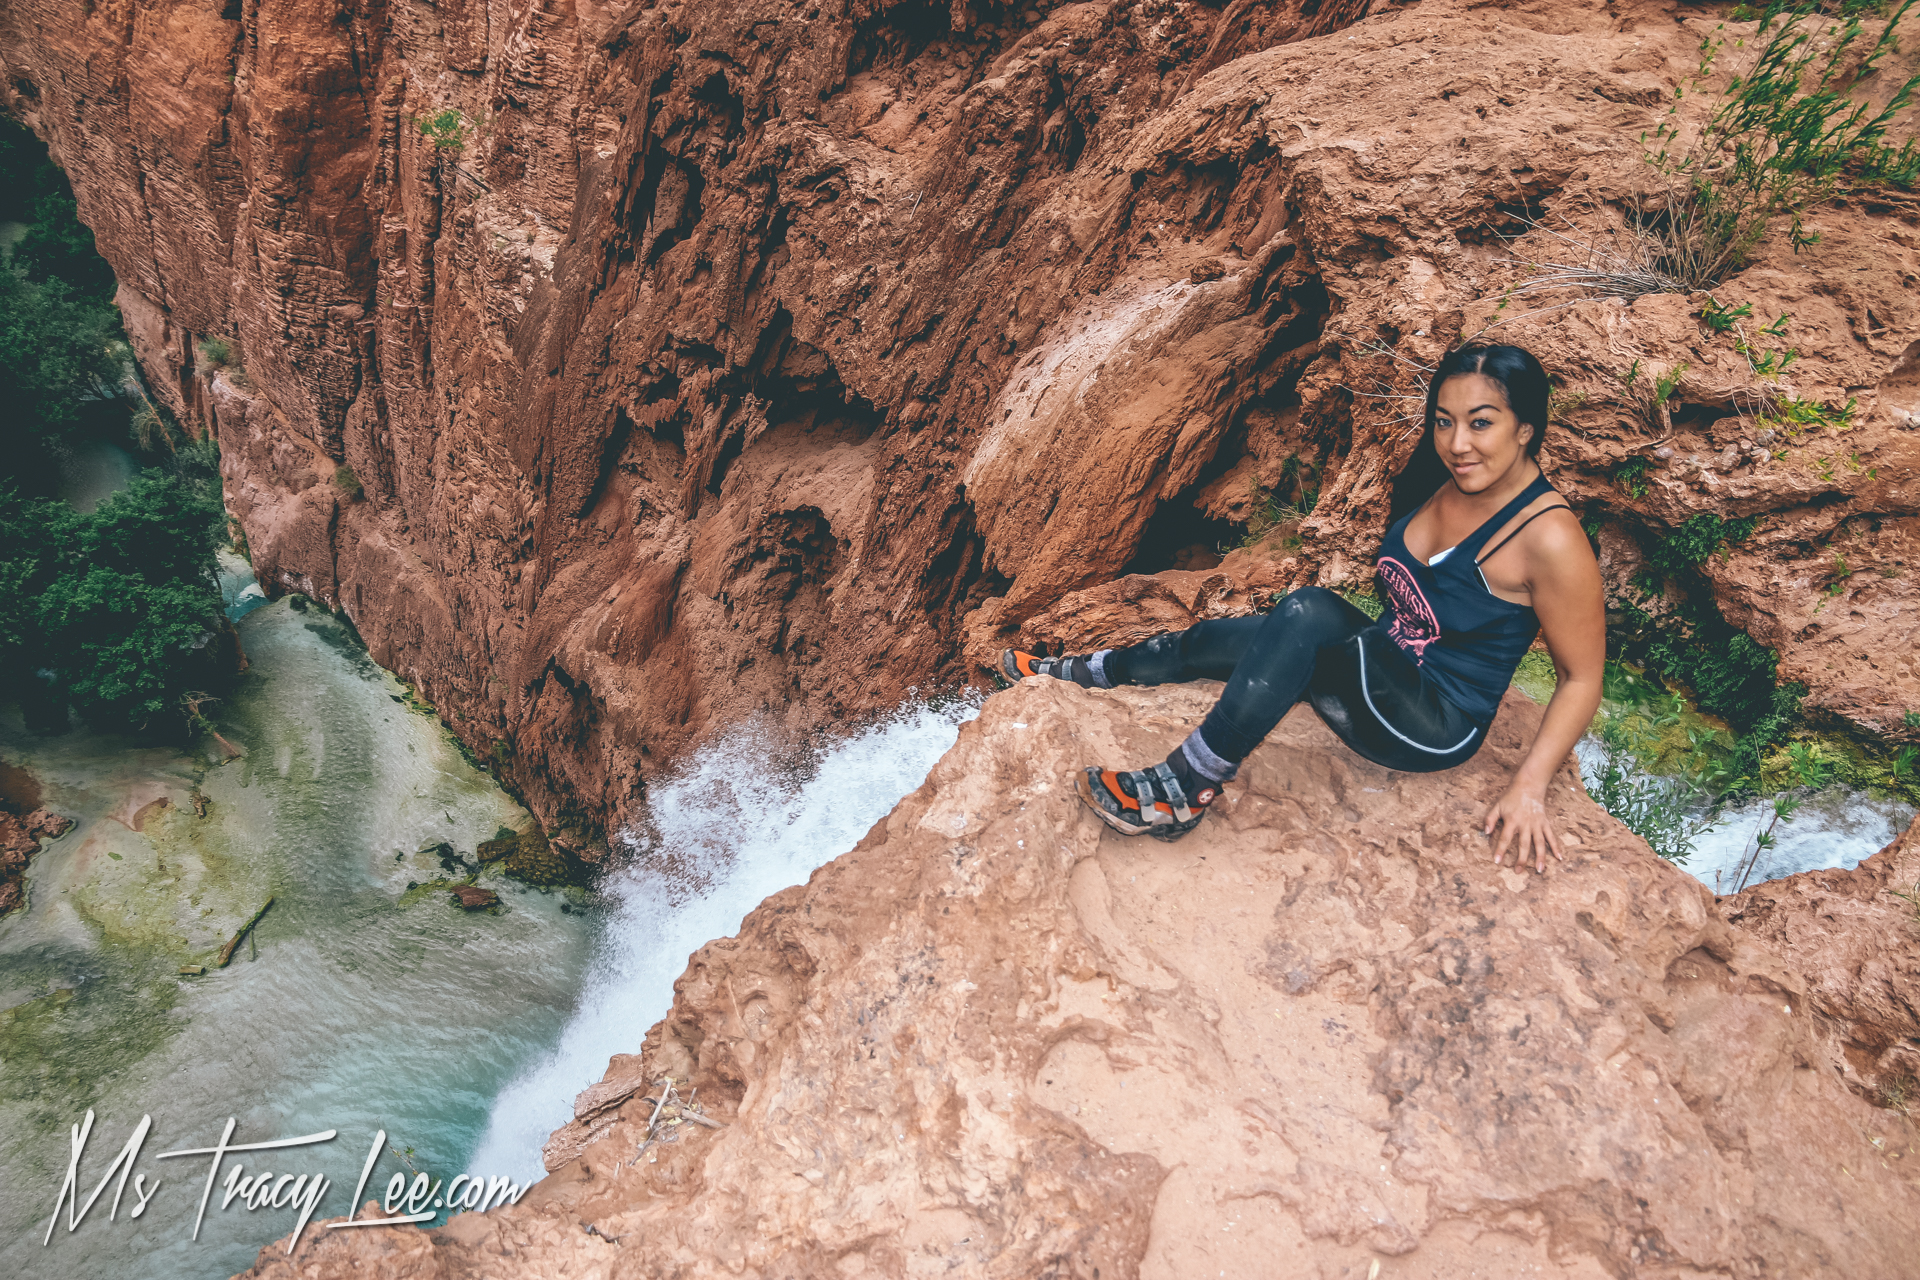 Bucket List Adventure to Havasu Falls in Havasupai Reservation